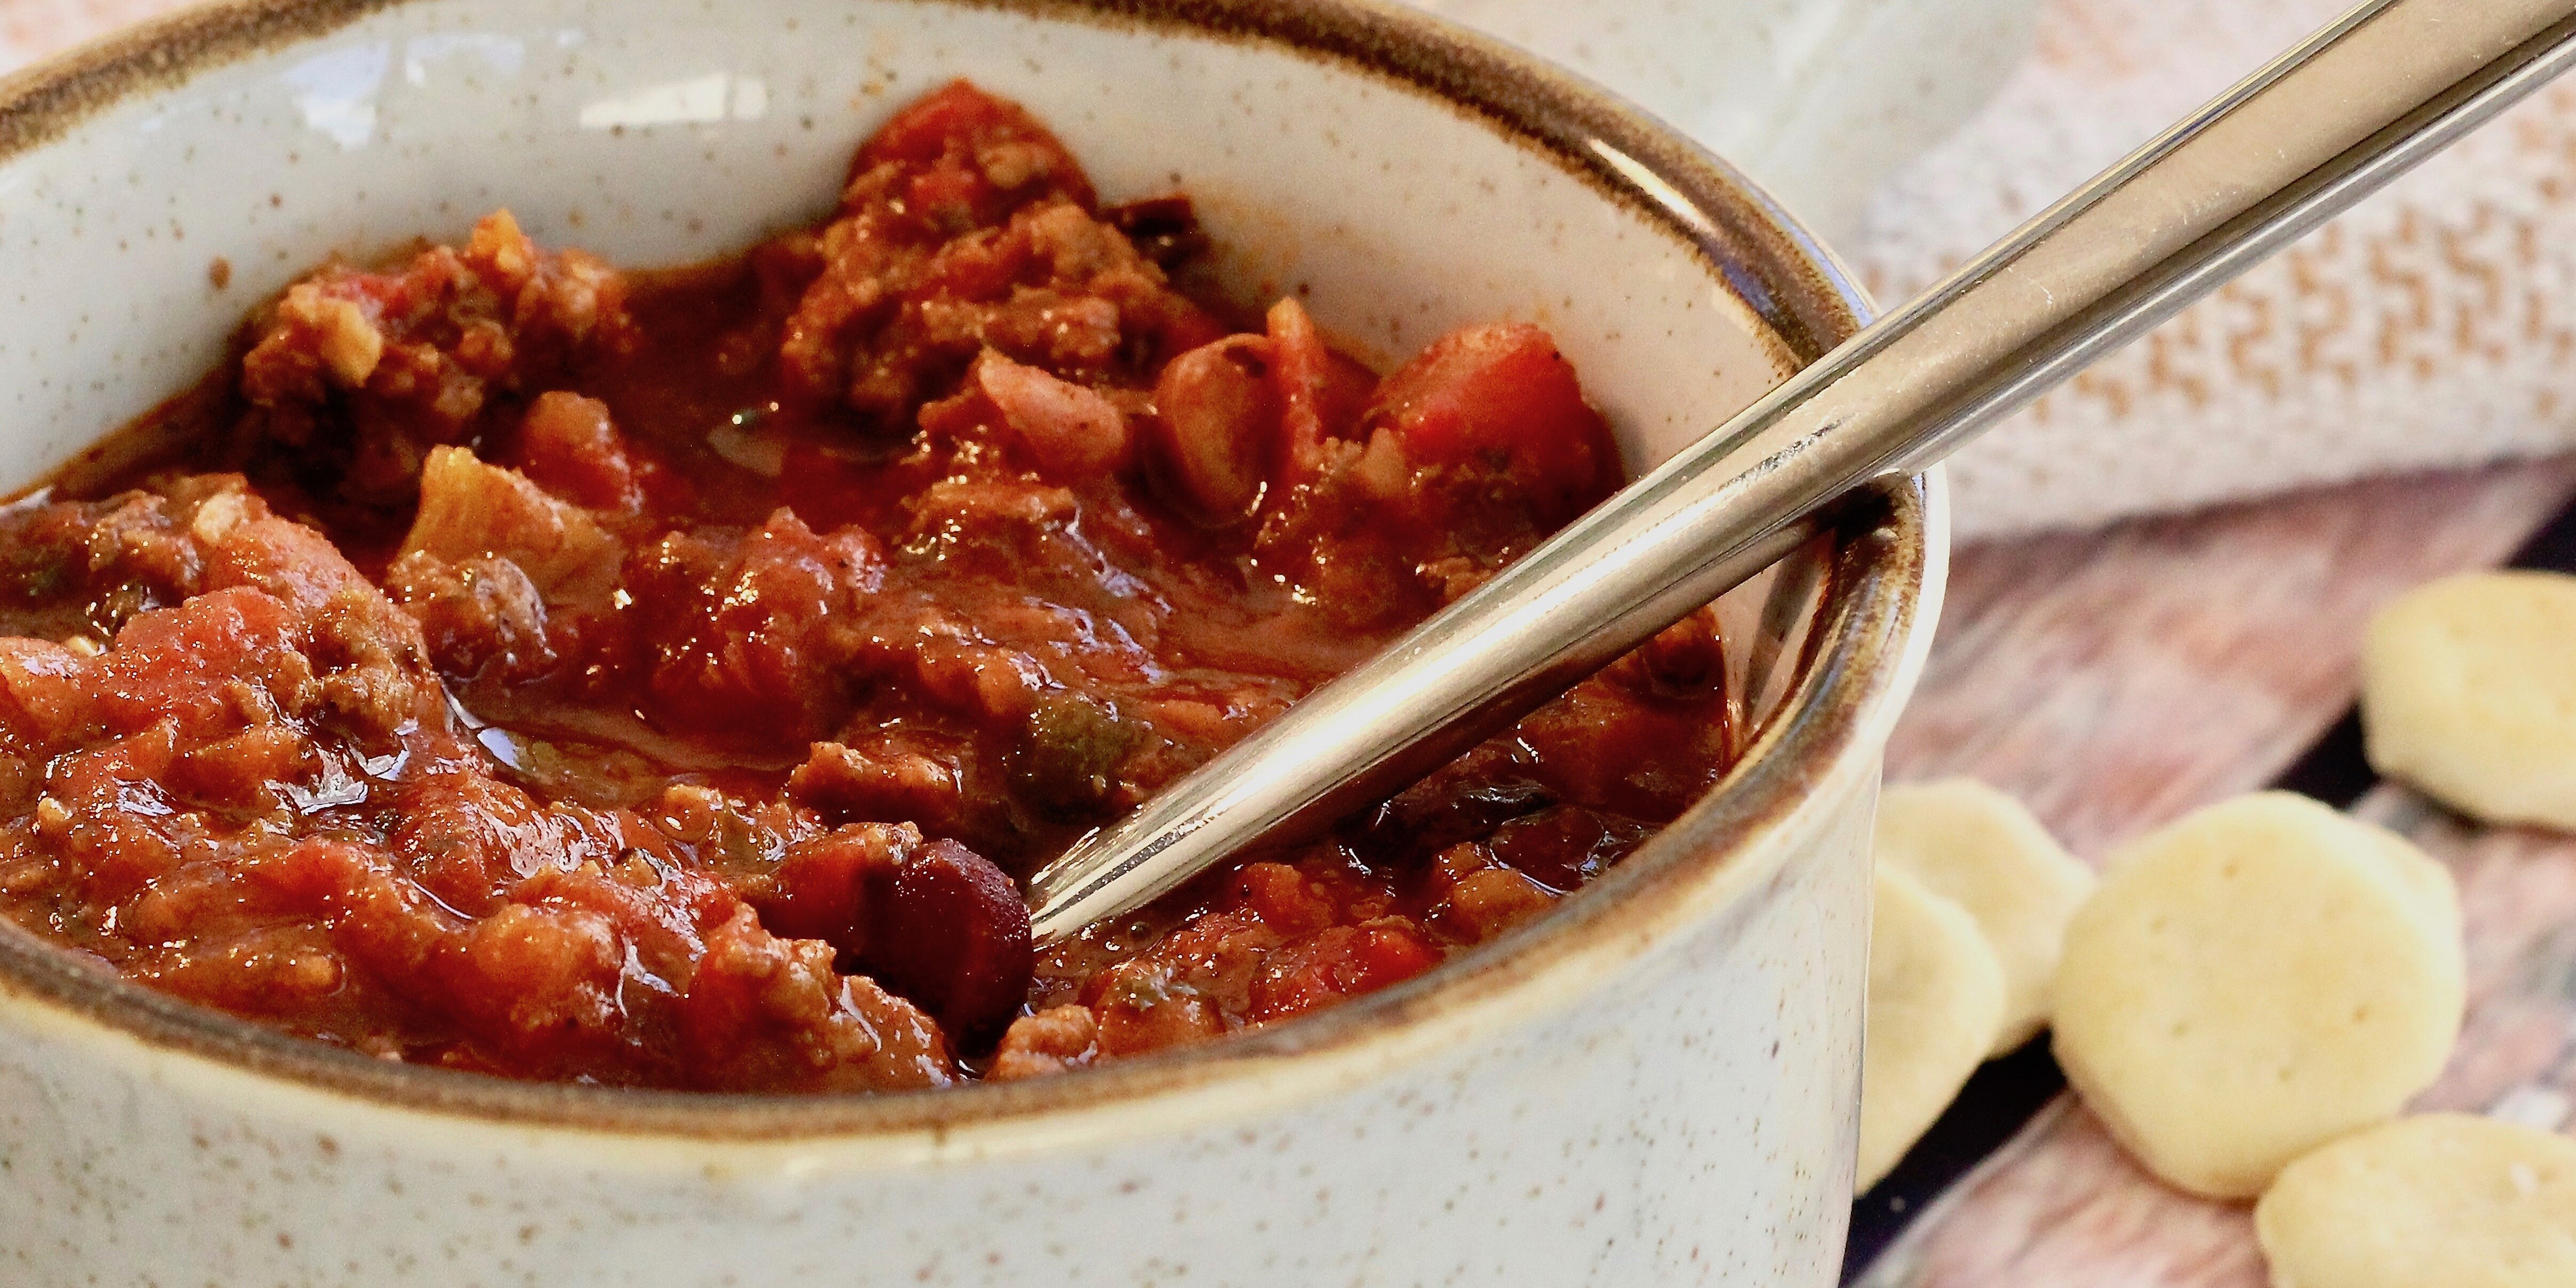 its chili by george